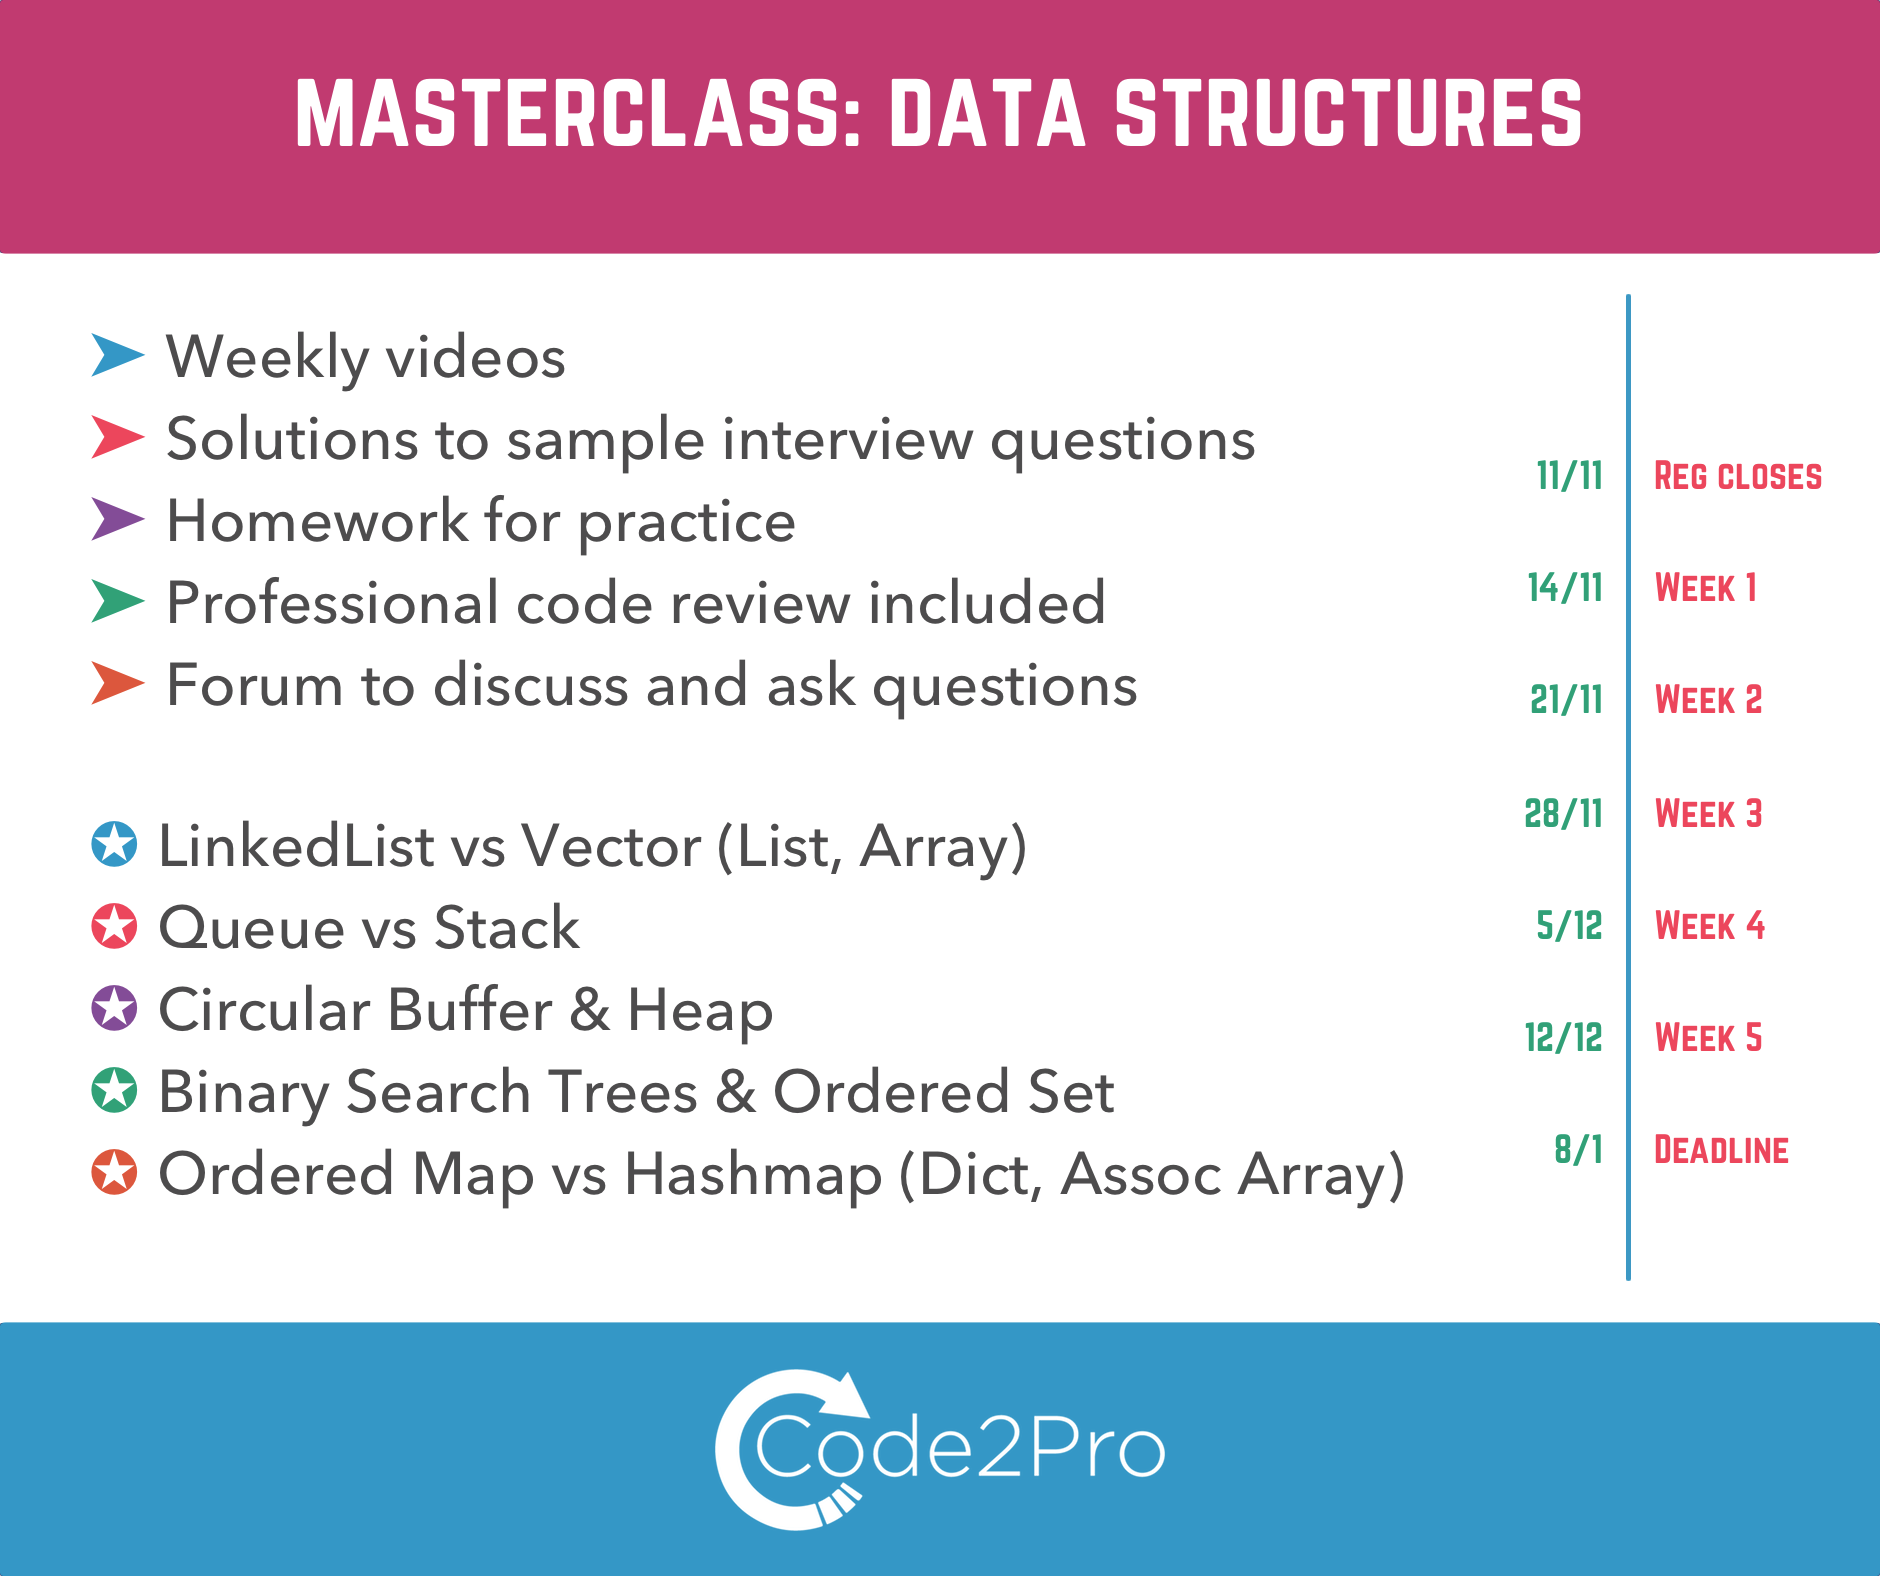 data structures masterclass real life applications amp case 1 university courses on data structures algorithms are strong on theory part but often lack pragmatism and practical aspects of data structures